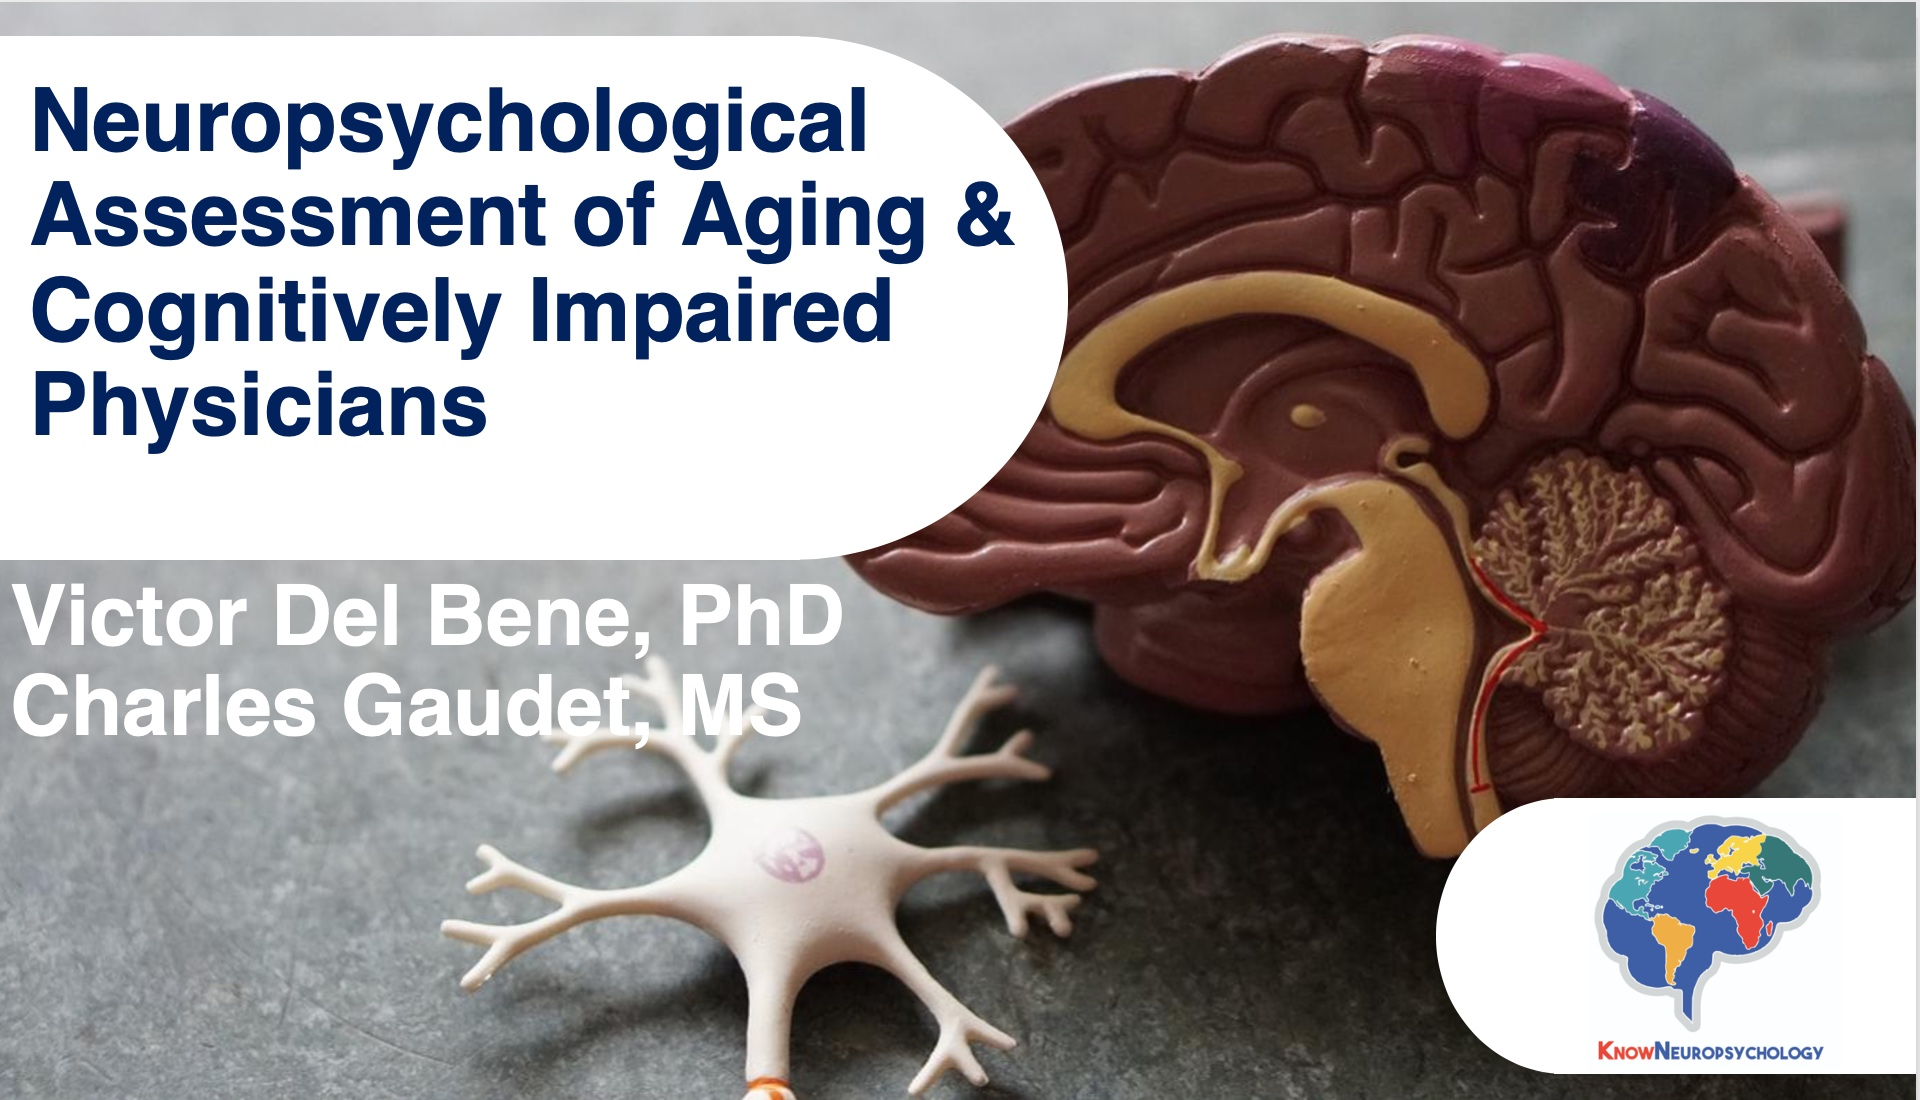 neuropsychological assessment of aging and cognitively impaired physicians lecture recording